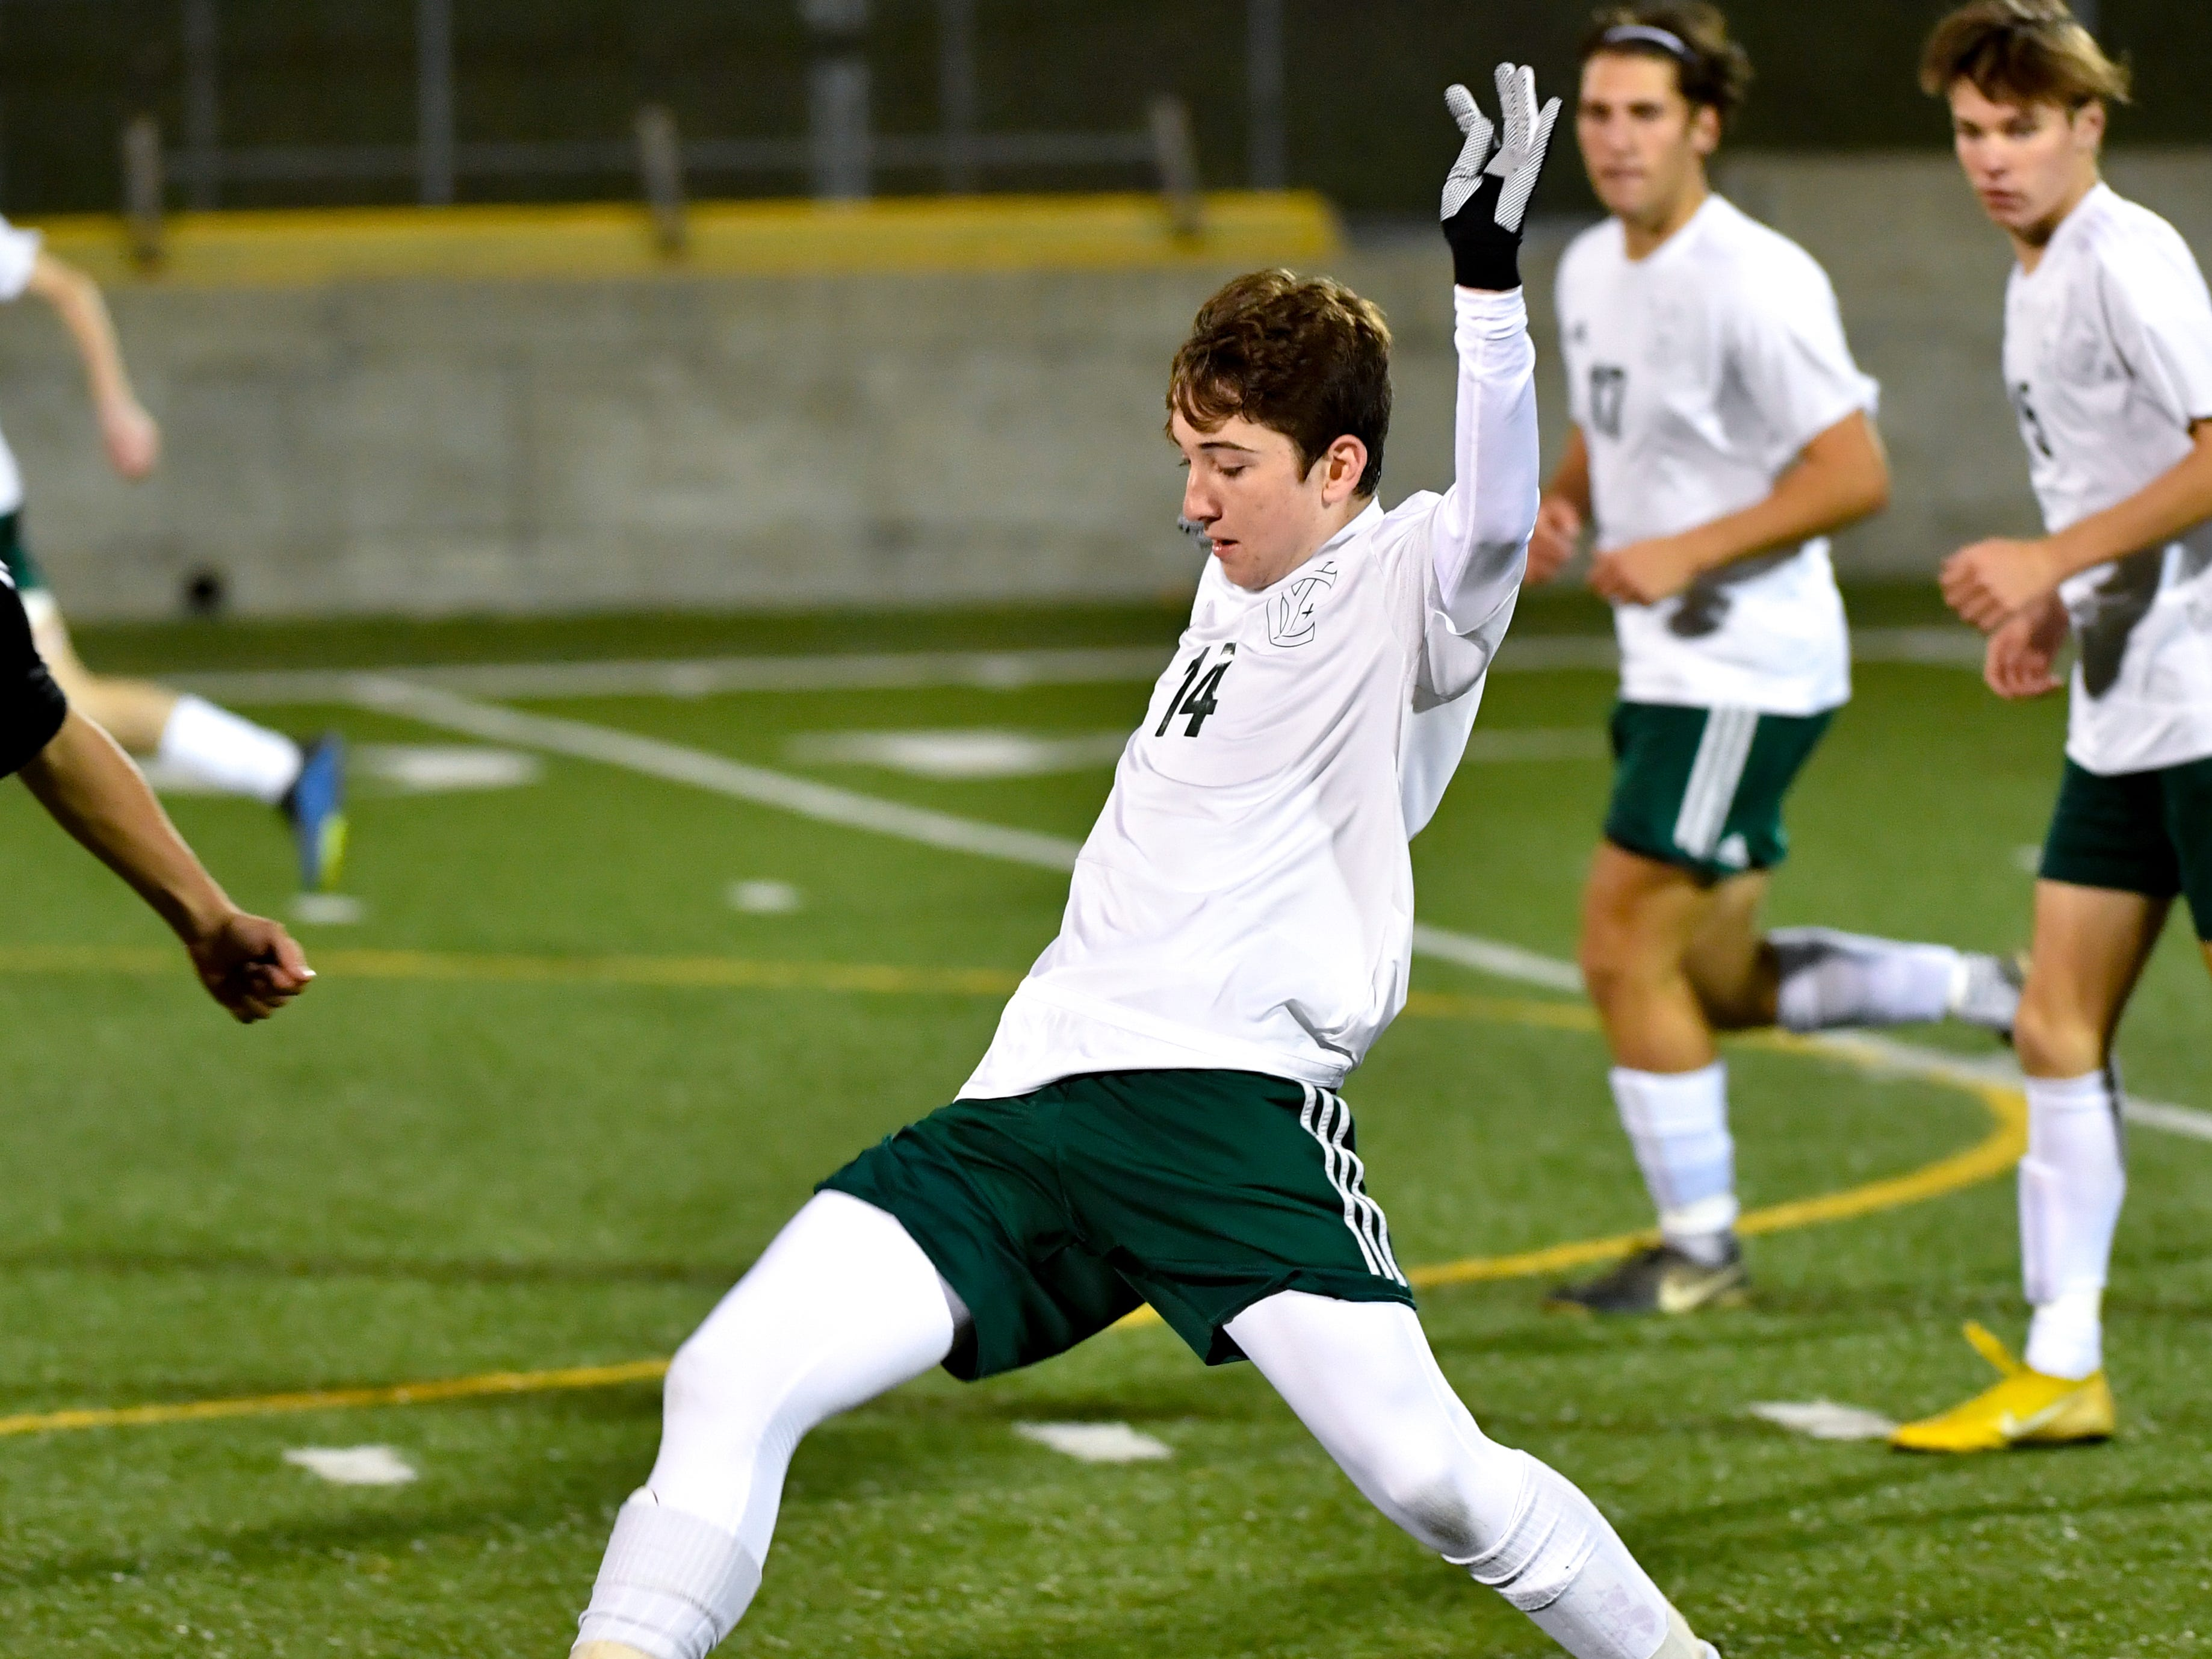 Dylan Staub (14) guides the ball during the boys soccer game between South Western and York Catholic, October 16, 2018. The Mustangs beat the Irish 2-1.